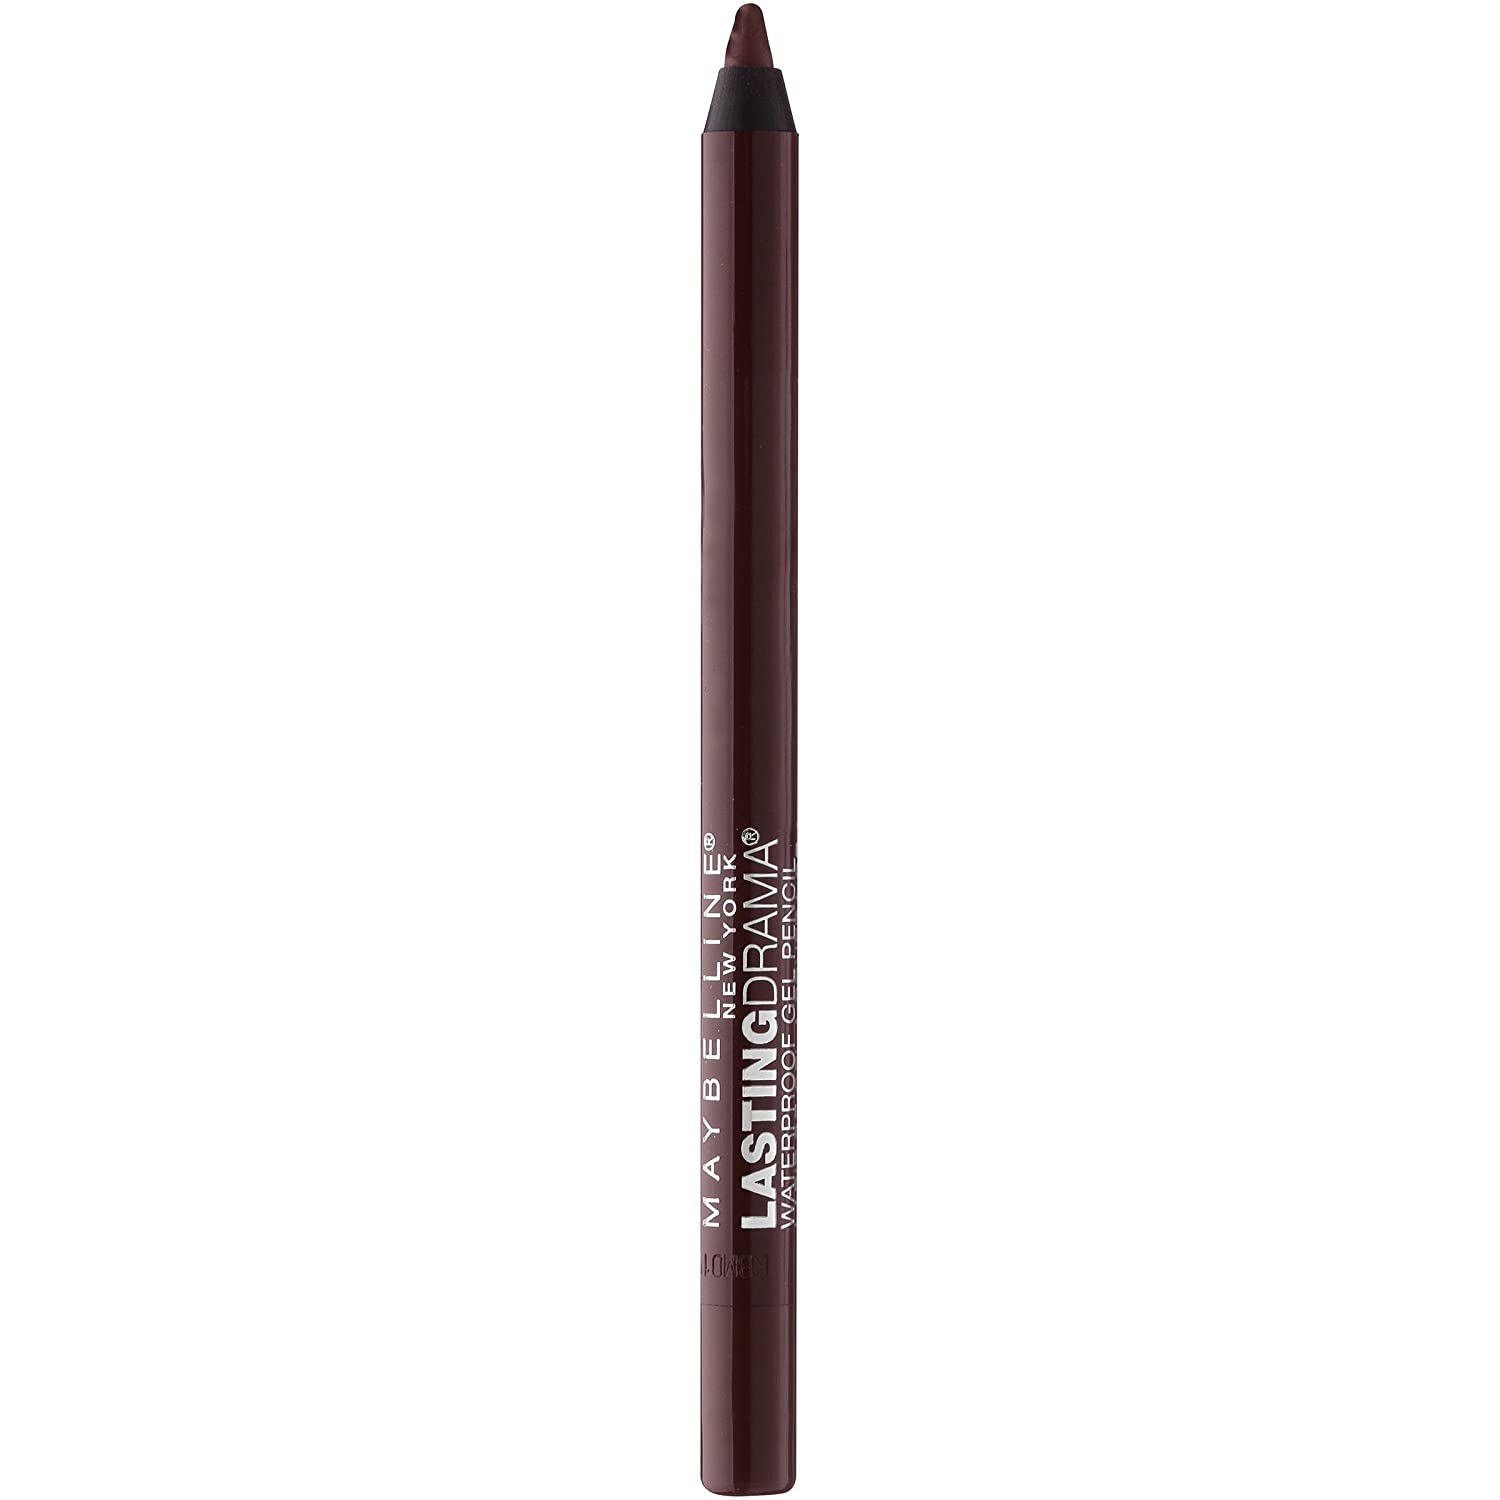 Maybelline New York Lasting Drama Waterproof Gel Pencil